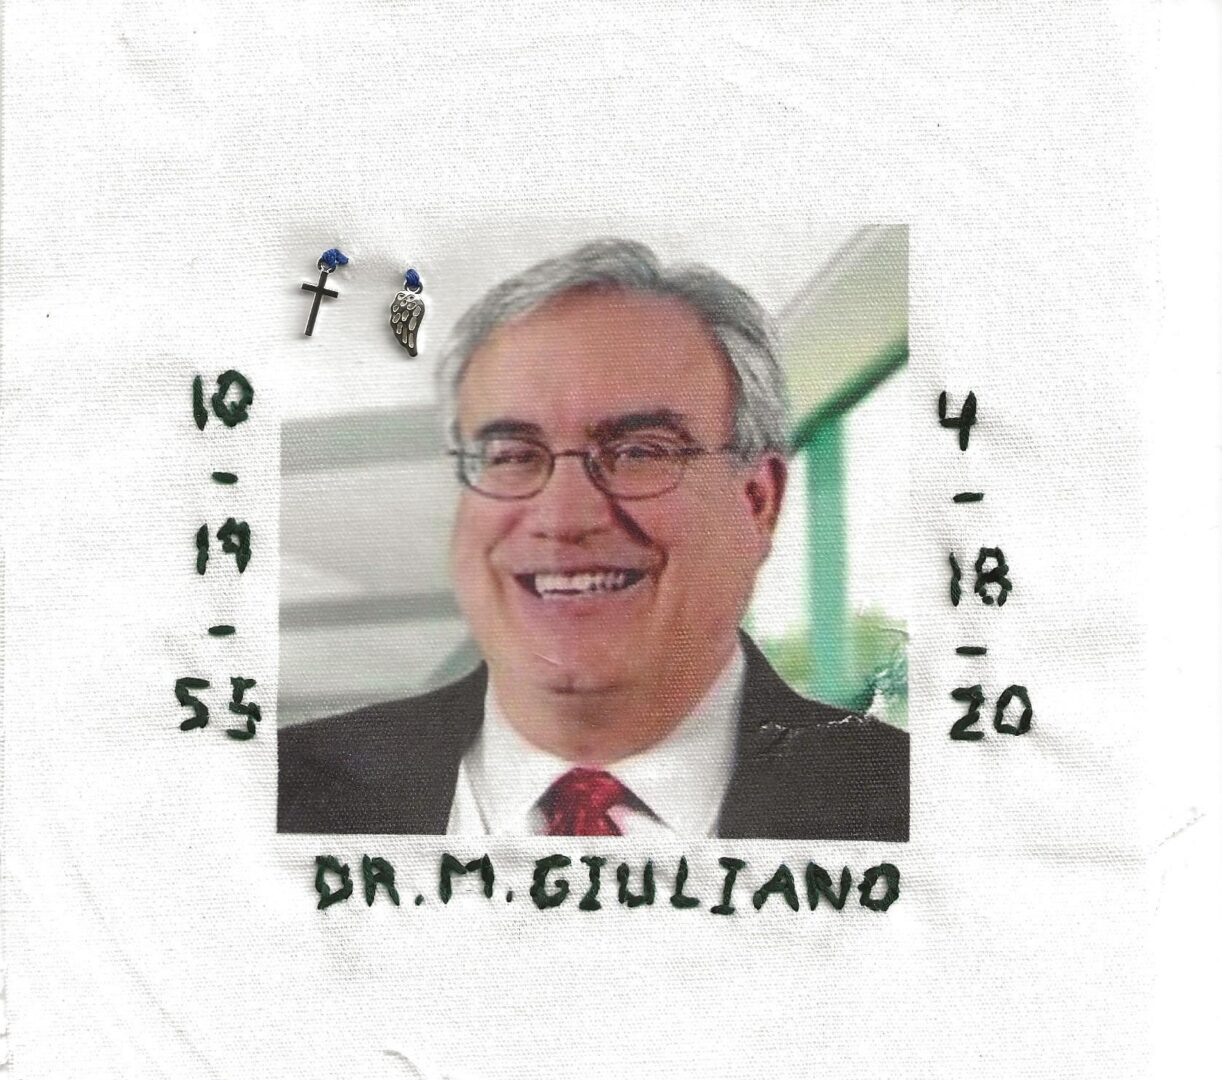 IN MEMORY OF DR. MICHAEL GIULIANO 10/19/55 - 4/18/20